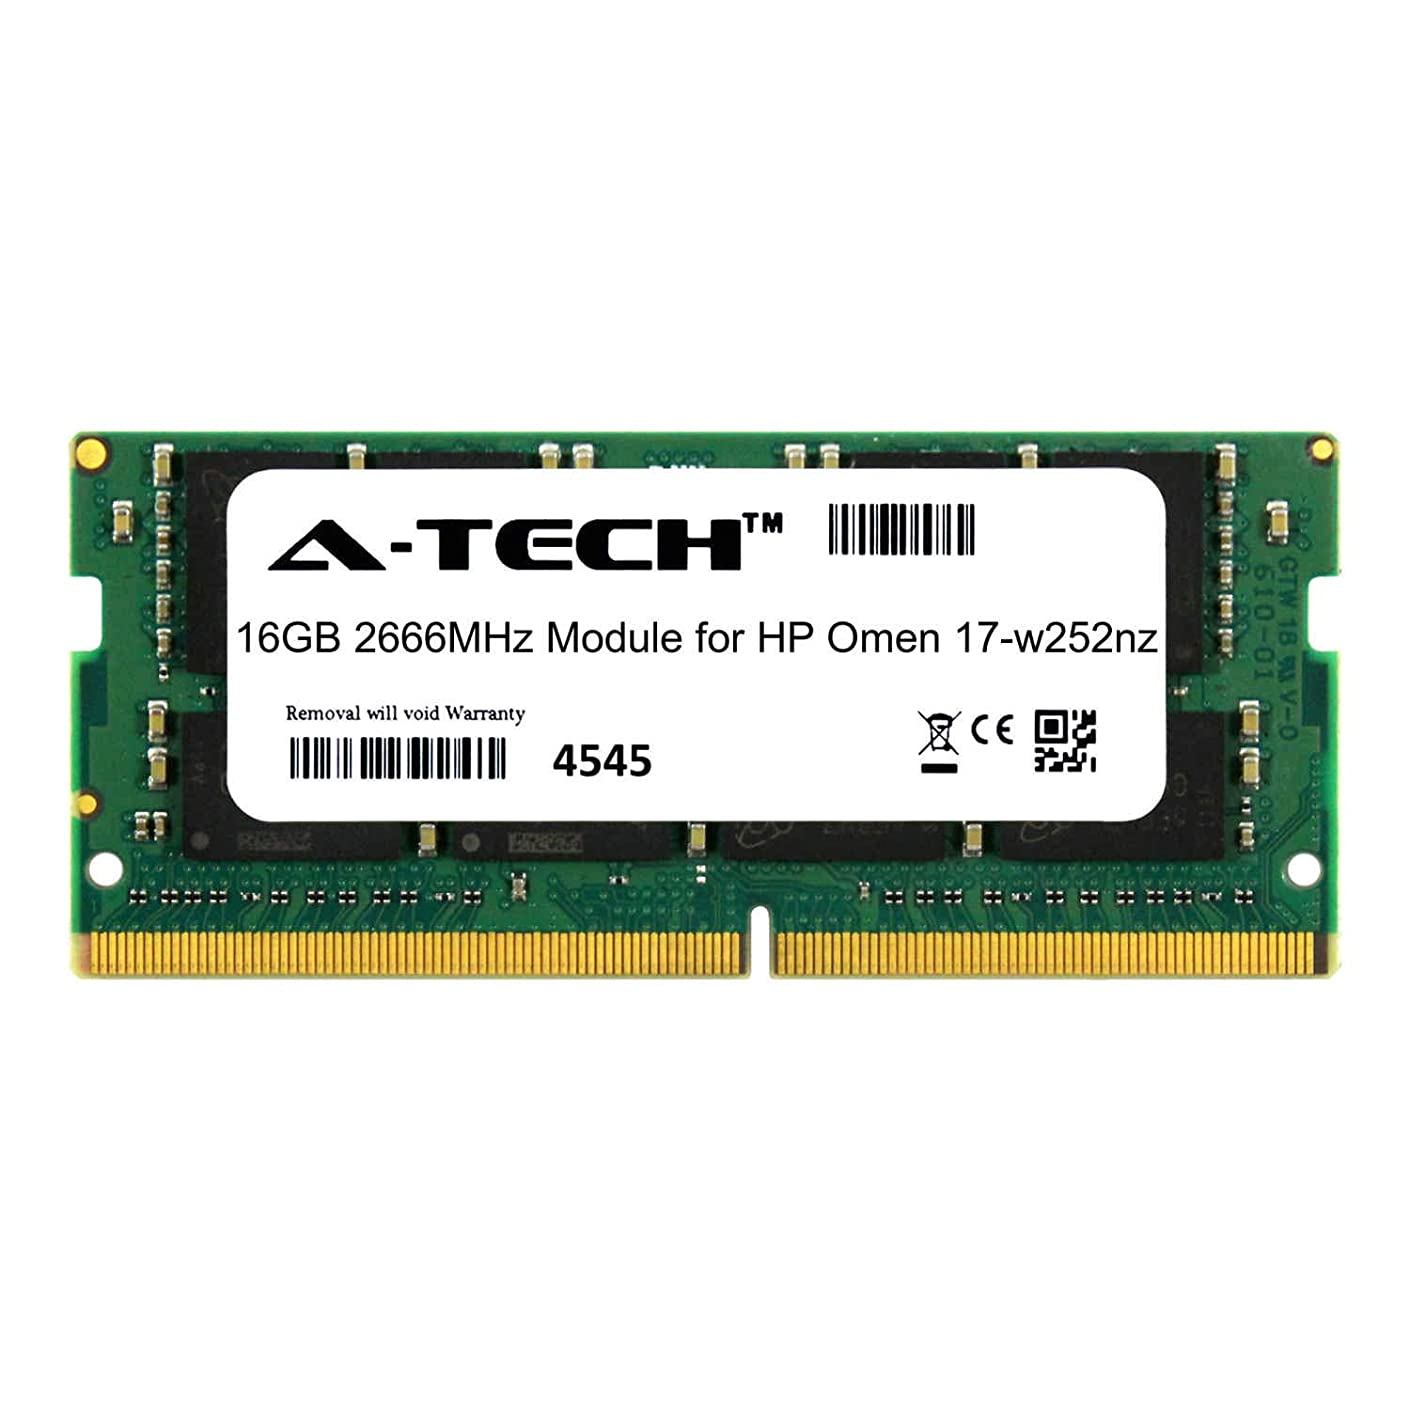 A-Tech 16GB Module for HP Omen 17-w252nz Laptop & Notebook Compatible DDR4 2666Mhz Memory Ram (ATMS281786A25832X1)